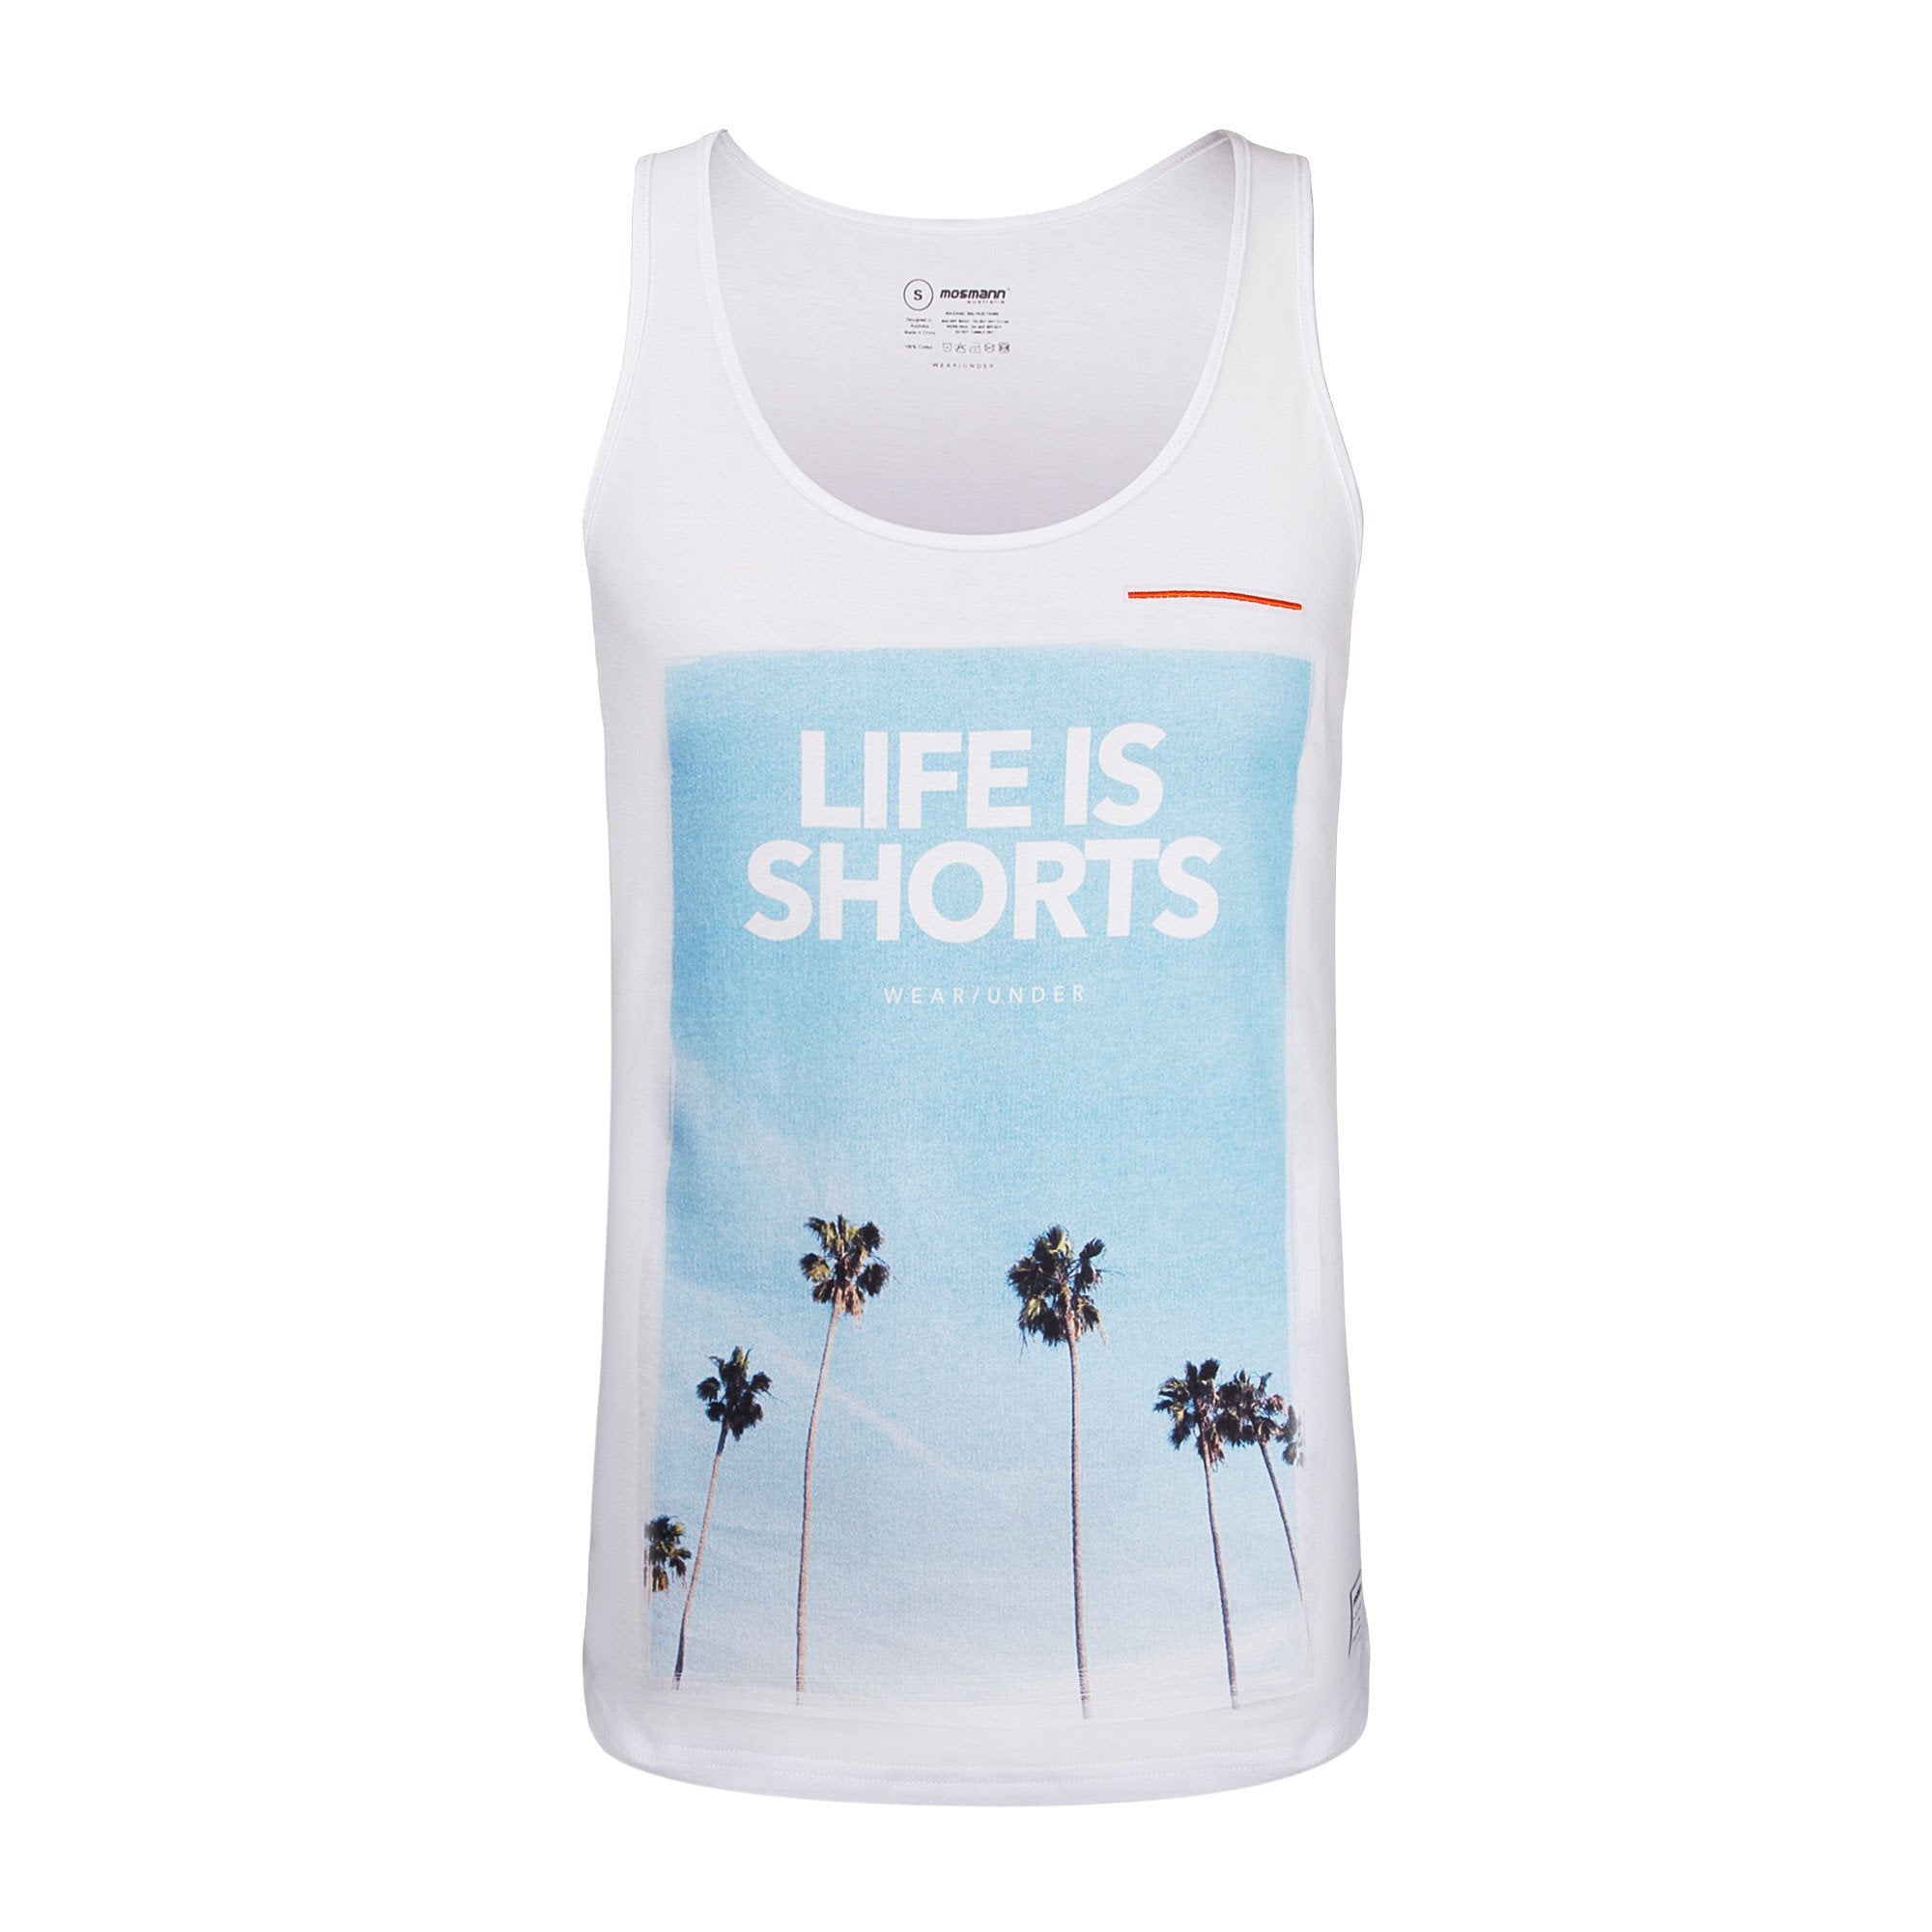 Mens White Printed Singlet With Palm Trees